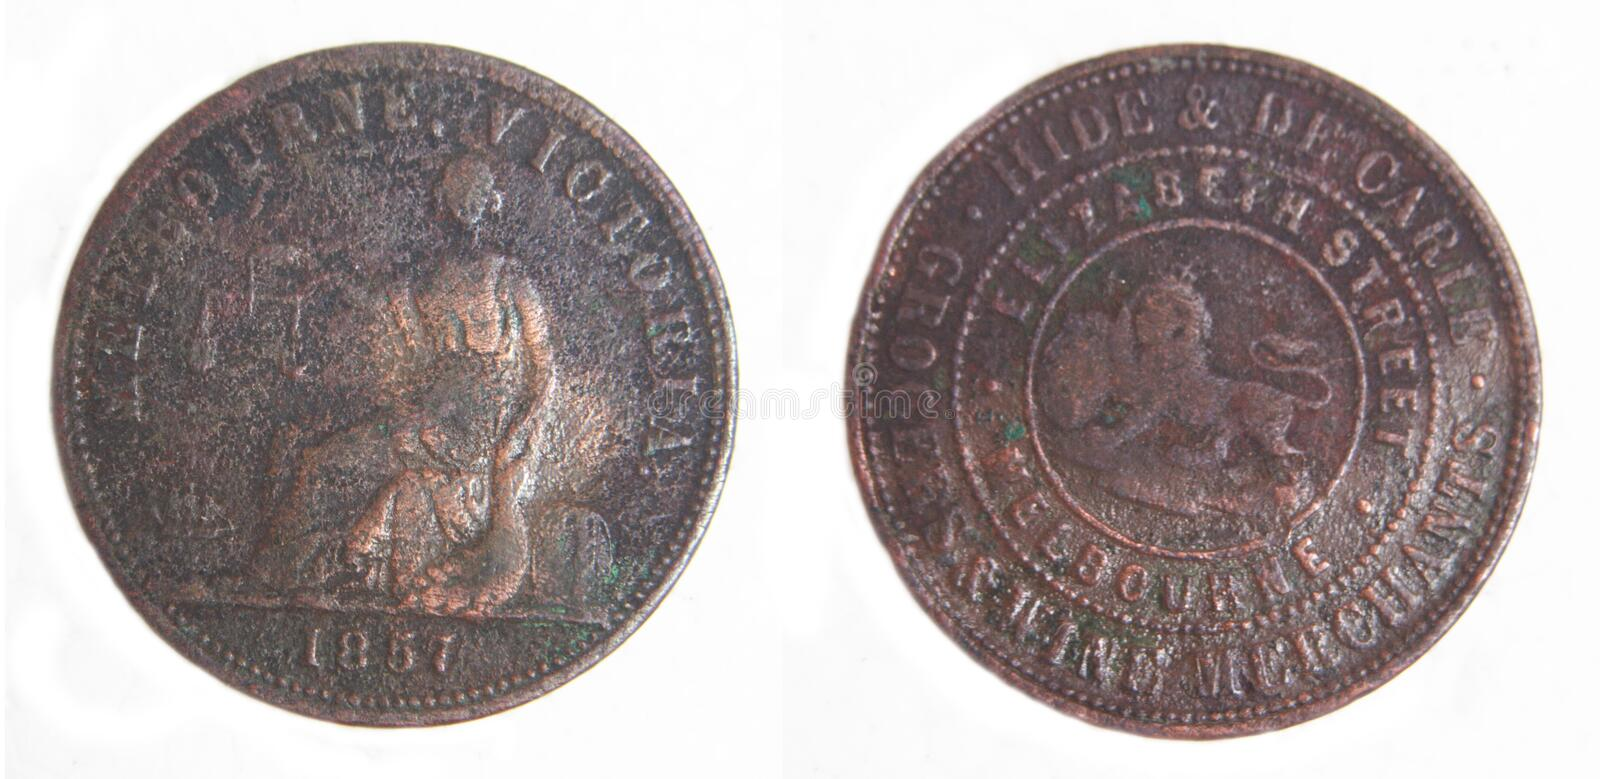 Australian 1857 Penny Token scarce copper coin. Australian 1857 Penny pre-decimal scarce coper coin HIDE & DE CARLE, GROCERS & WINE MERCHANTS, MELBOURNE stock photography